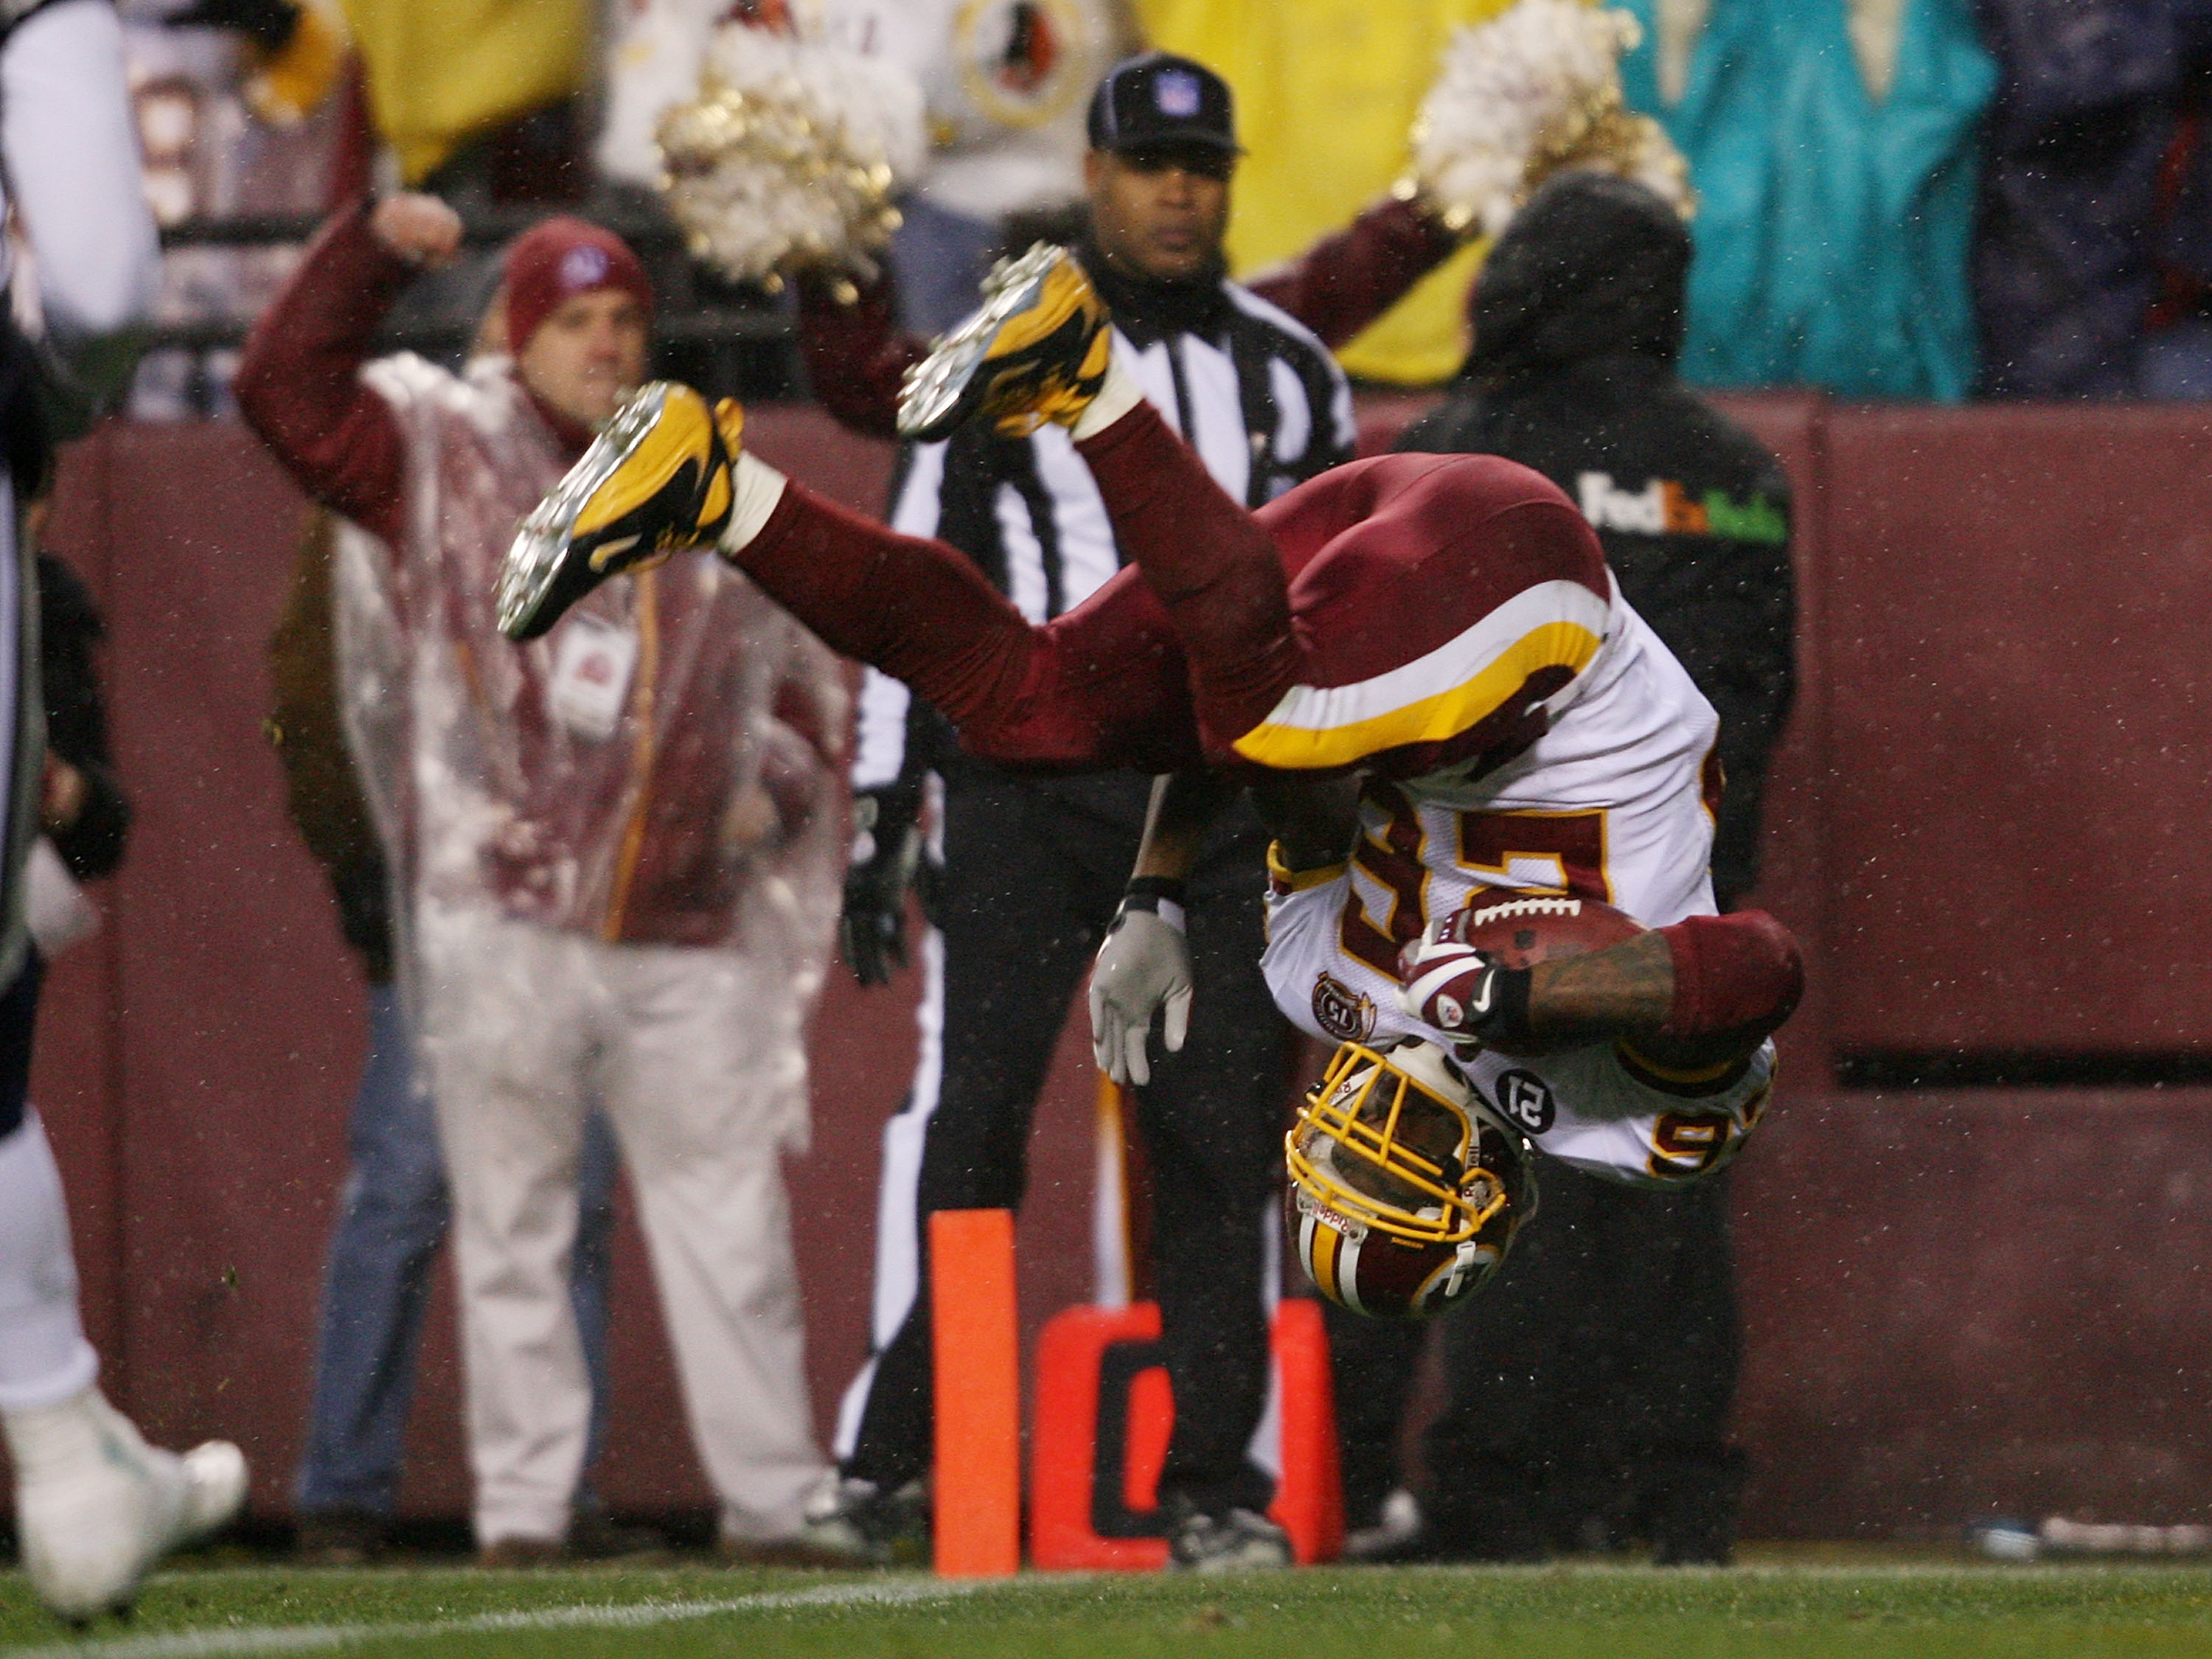 LANDOVER, MD  - DECEMBER 30:   Clinton Portis #26 of the Washington Redskins does a somersault into the endzone as he scores a first quarter touchdown against the Dallas Cowboys on his way to a touchdown on December 30, 2007 at FedEx Field in Landover, Ma